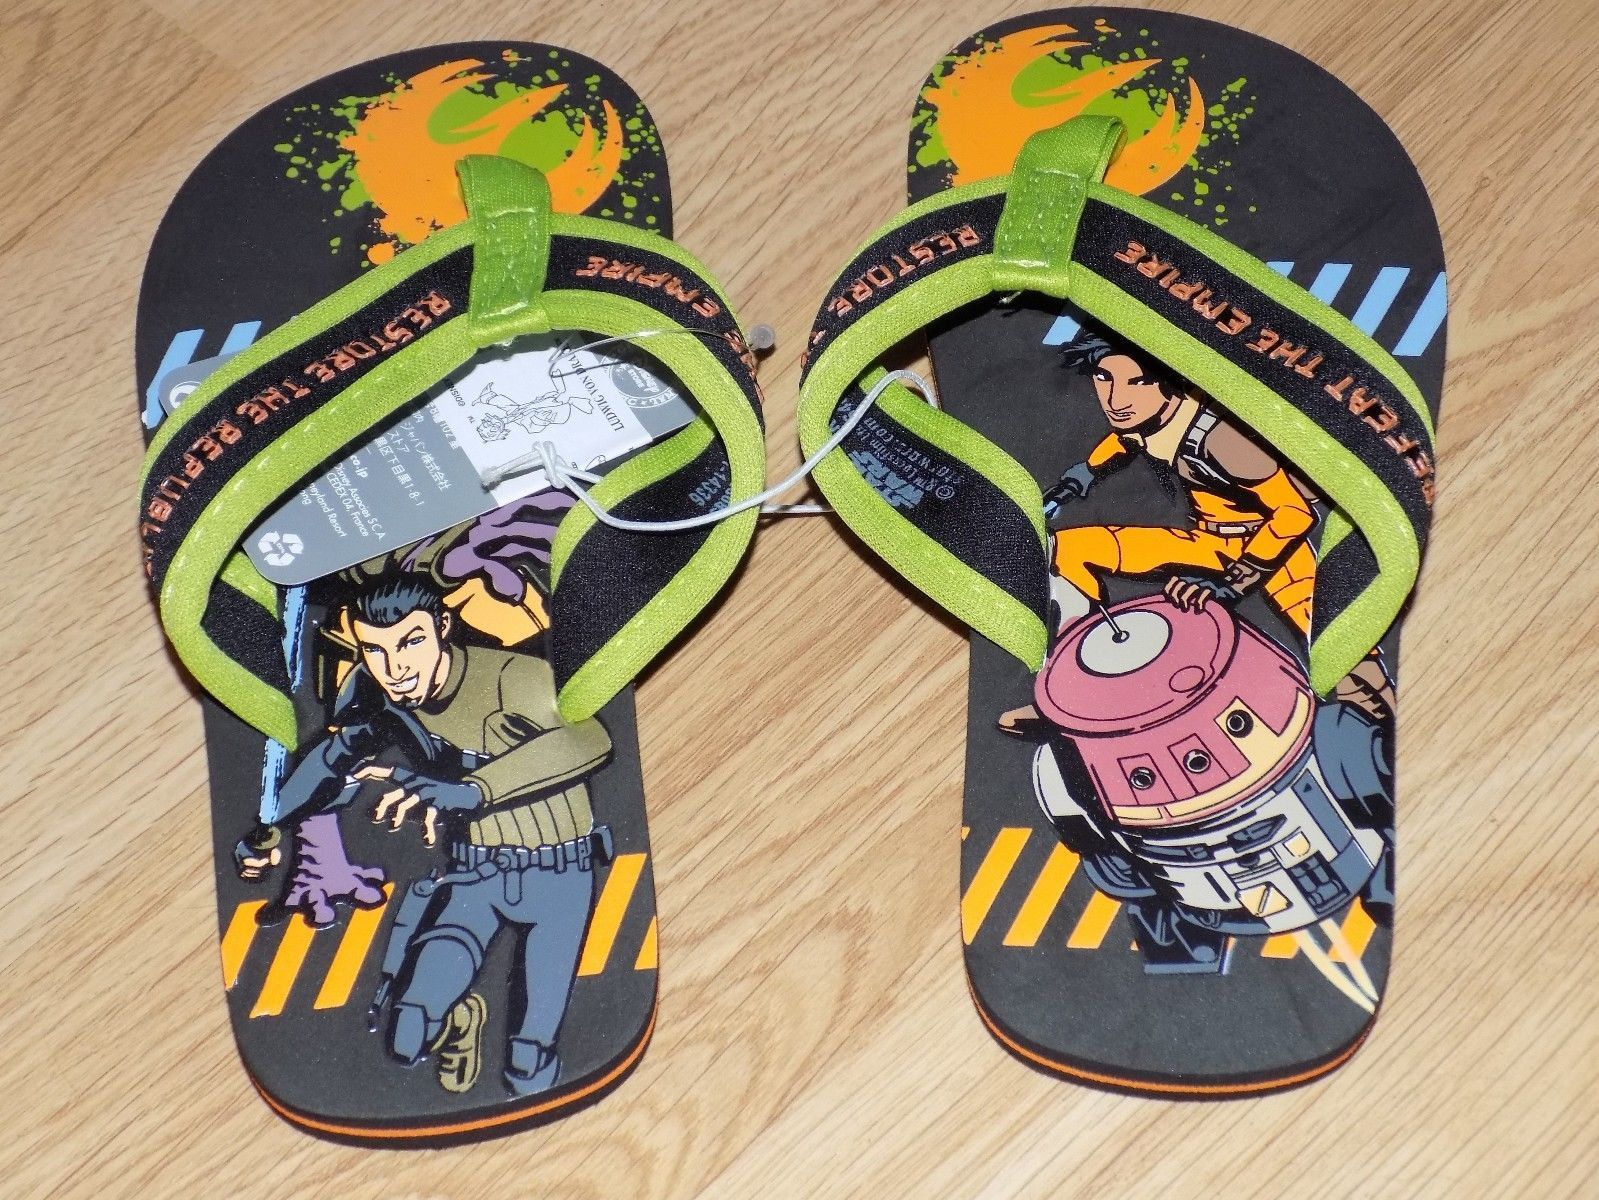 Boy's Size 9-10 Disney Store Star Wars Rebels Green Black Flip Flops Shoes New image 2